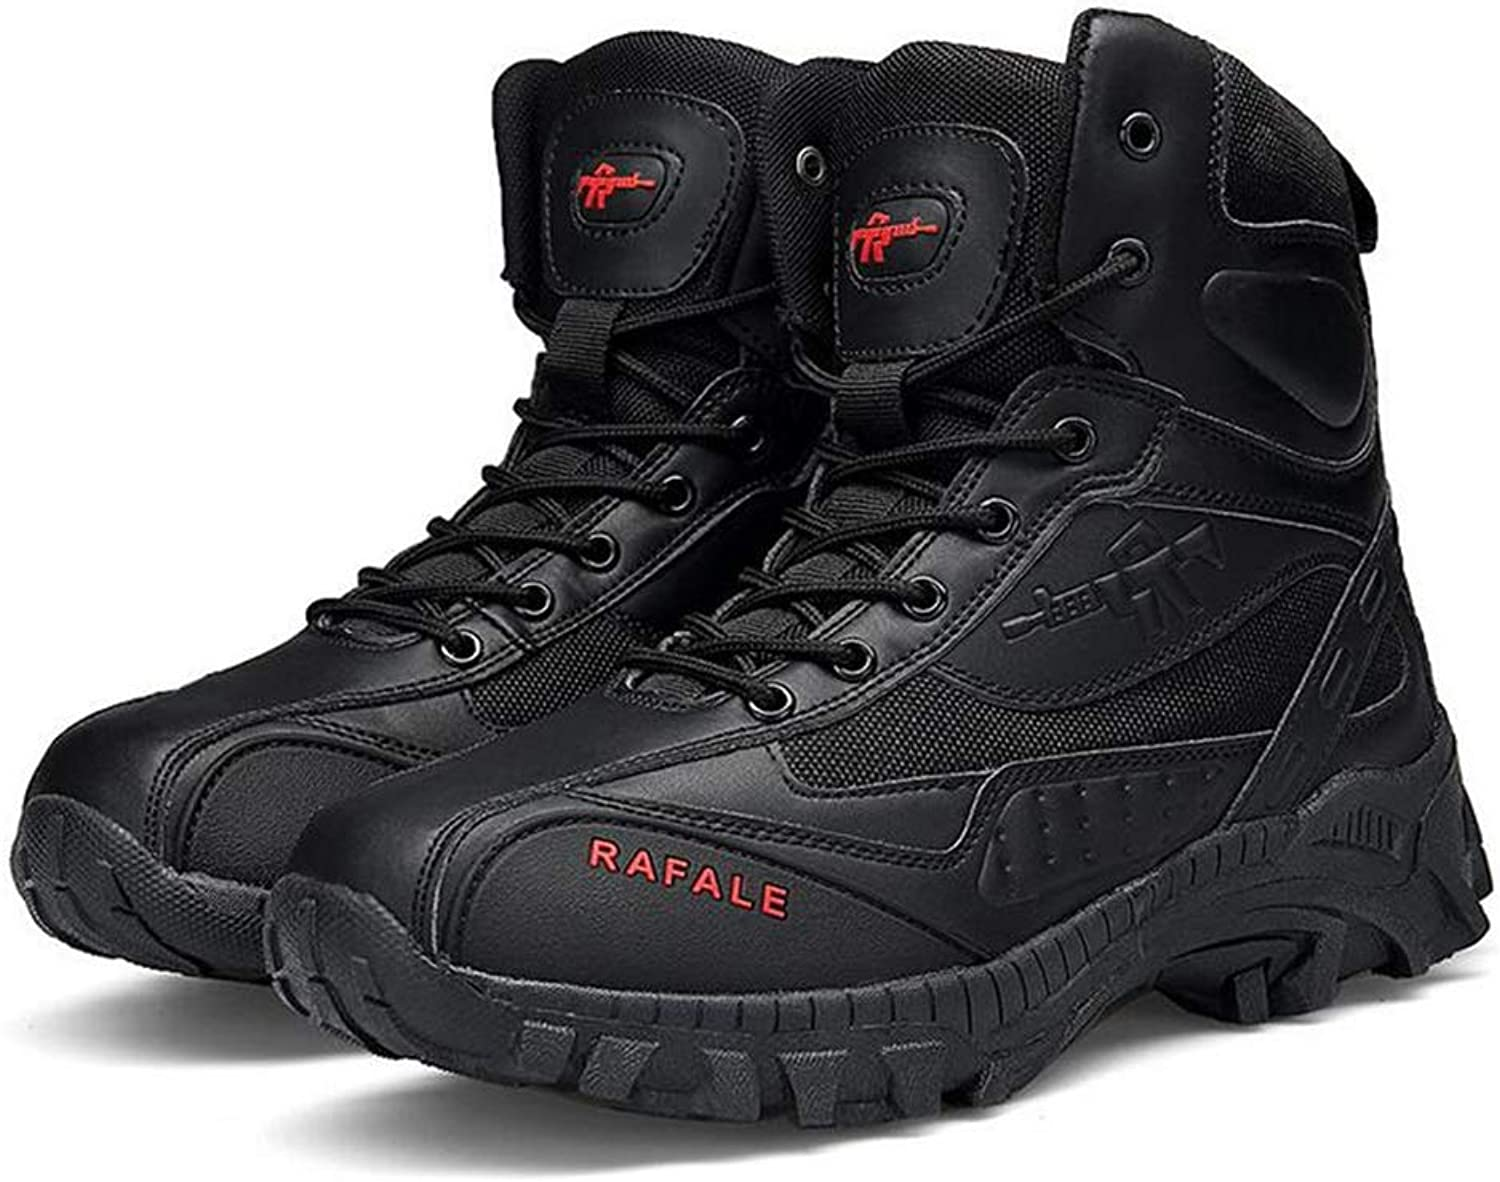 Y-H Men's shoes, Fall winter Casual Sneakers, top Tooling Boots,Military Boots,Formal shoes,Outdoor Hiking shoes (color   Black, Size   46)